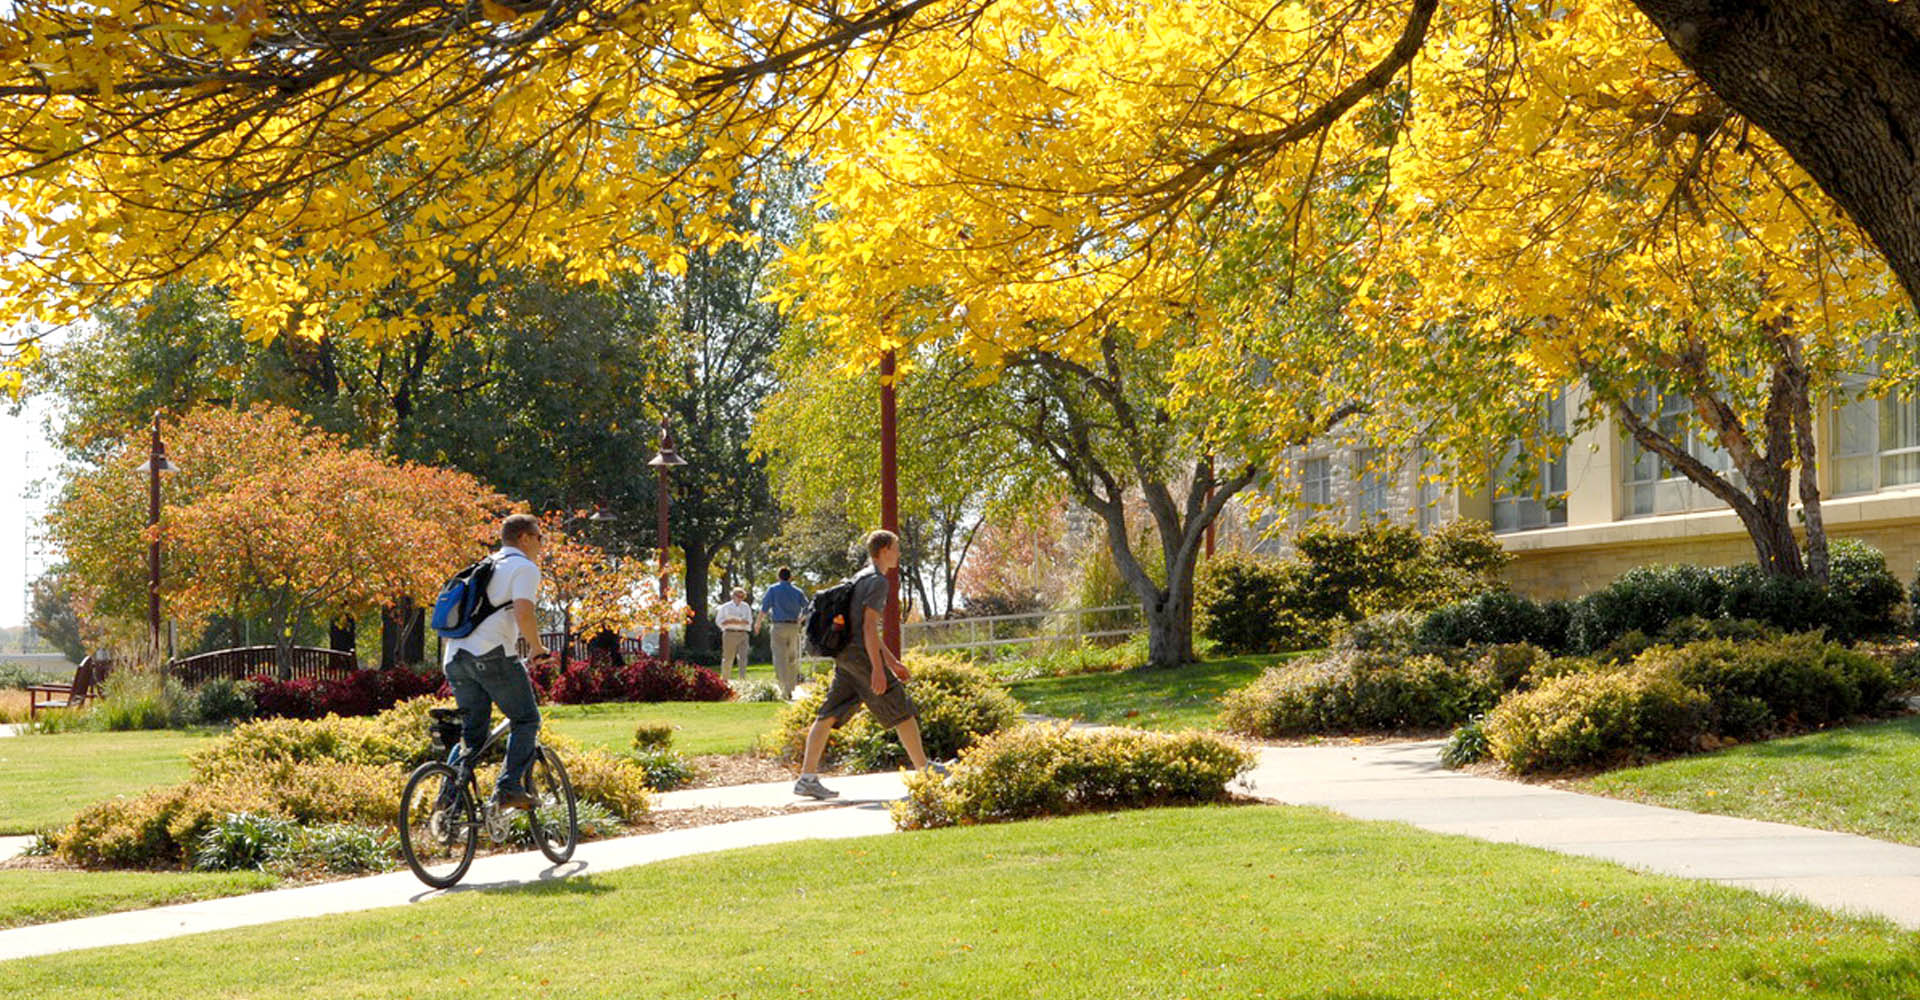 campus in fall with students walking and riding bikes